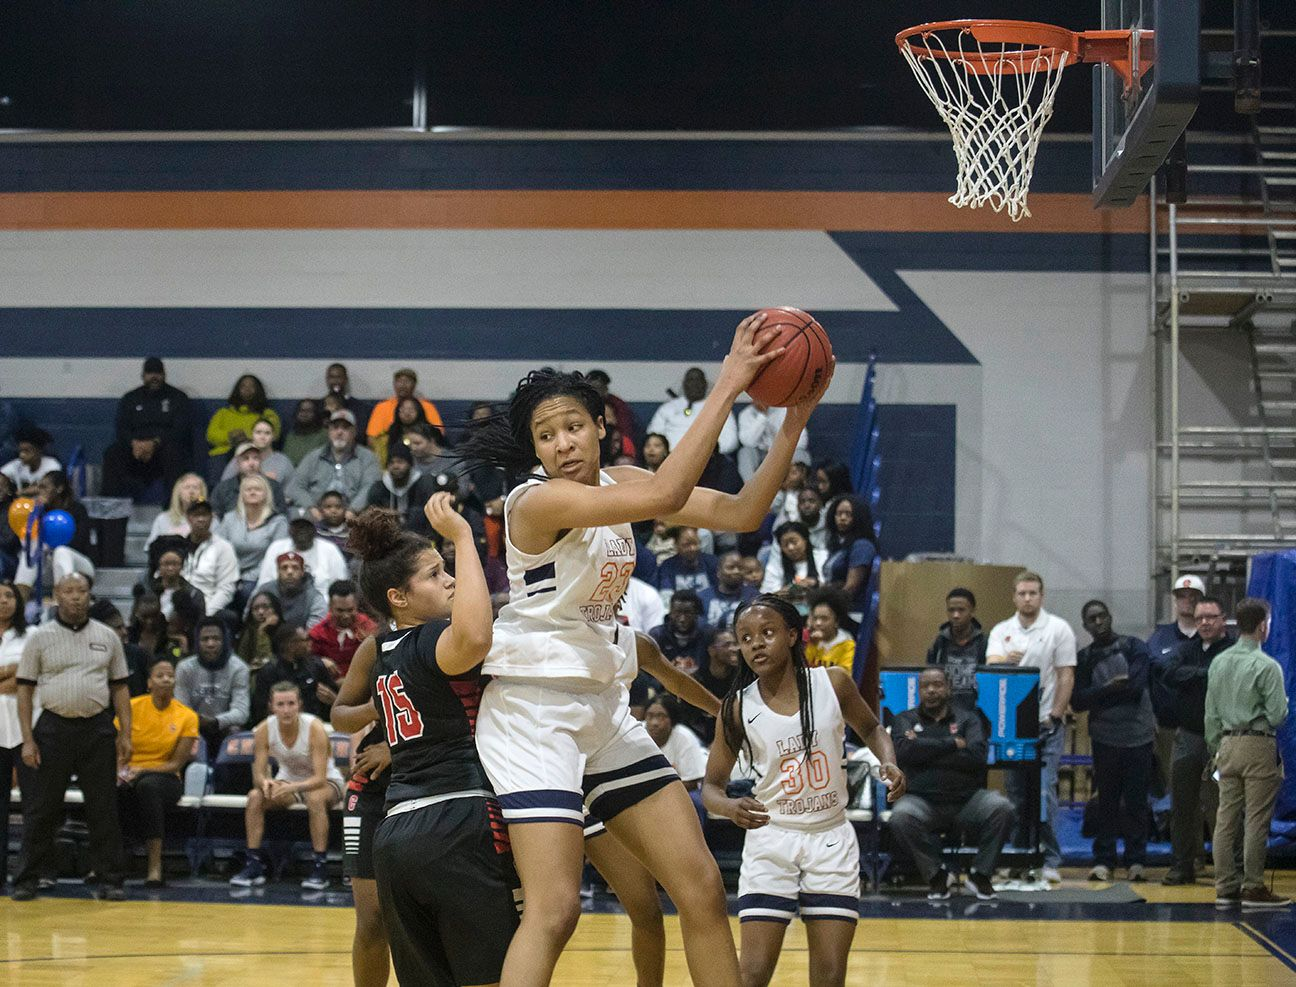 Maori Davenport did much more than score in her return to the Charles Henderson lineup.